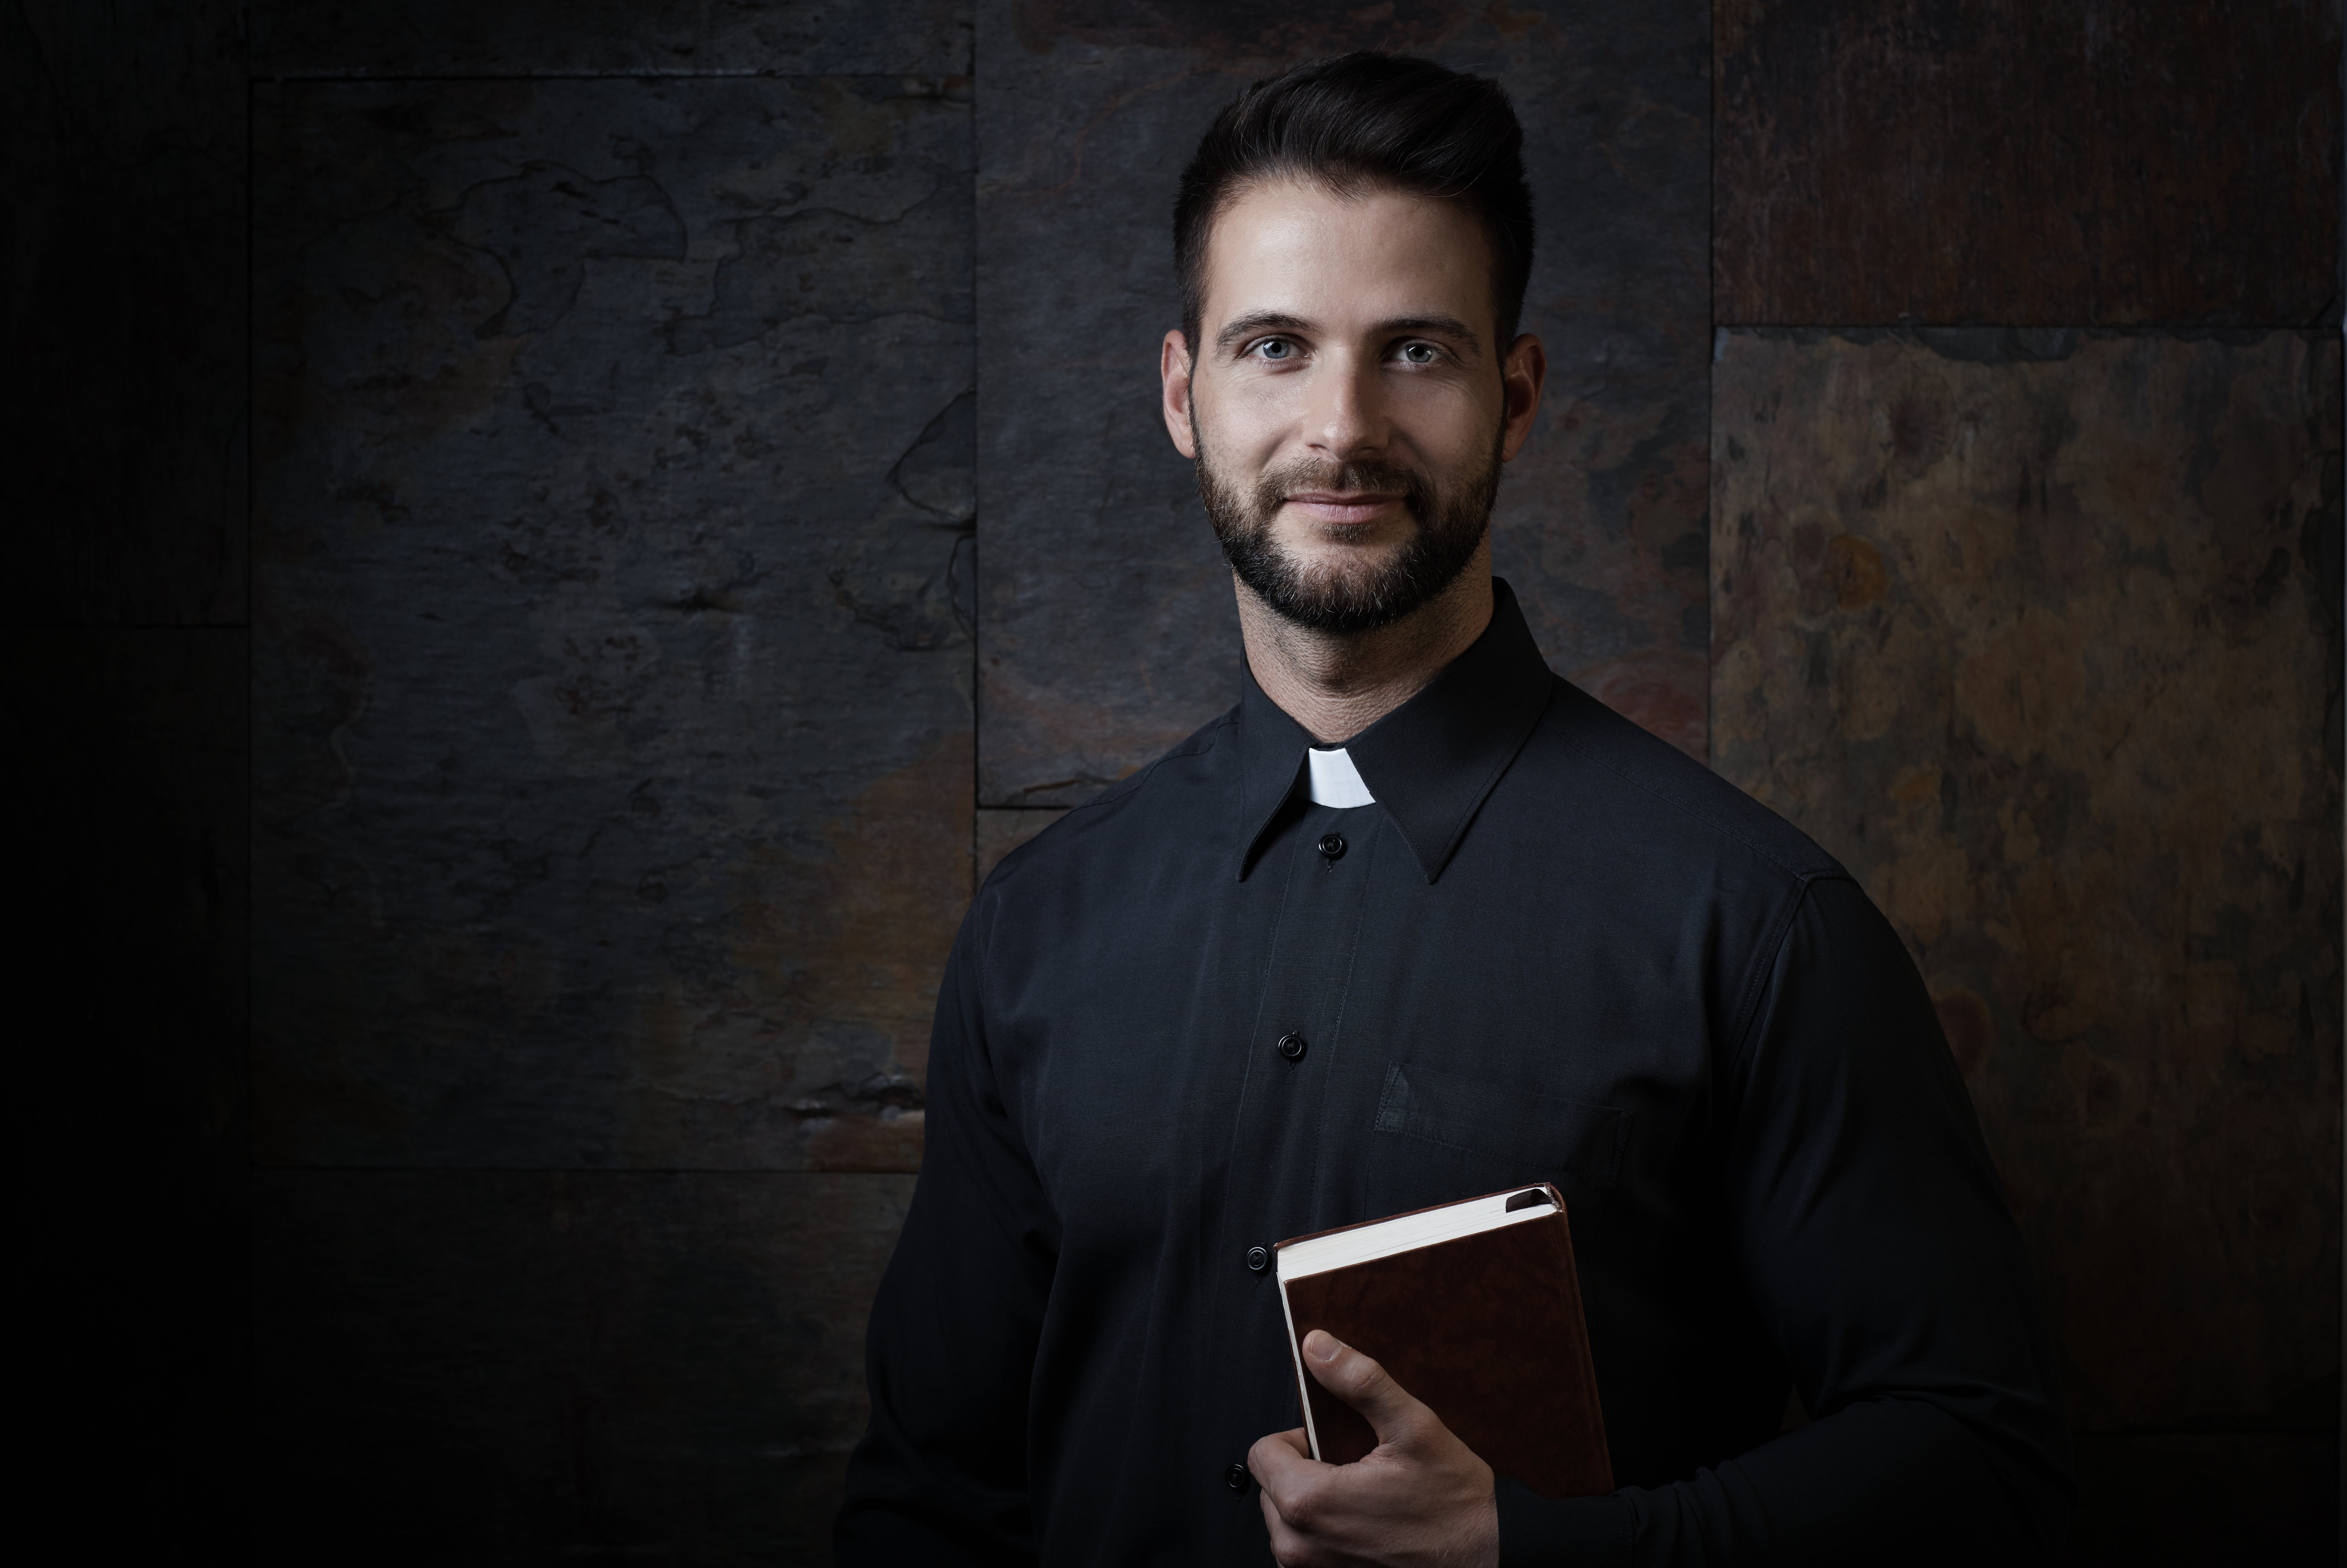 A priest. Image credit: Shutterstock.